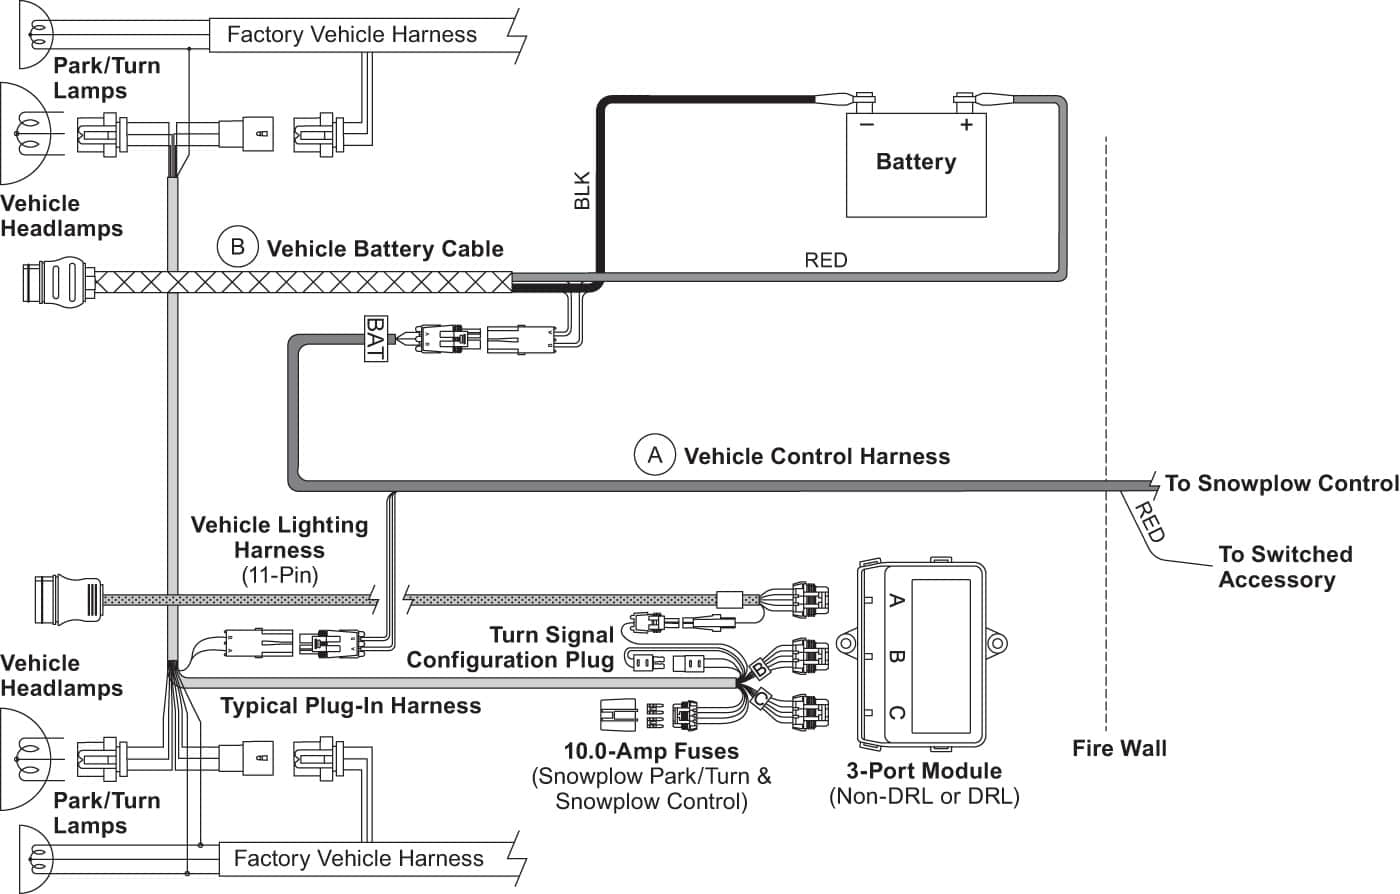 Snow Plow Wiring Diagram Power Unit - Wiring Diagram Data - Boss Snow Plow Wiring Diagram